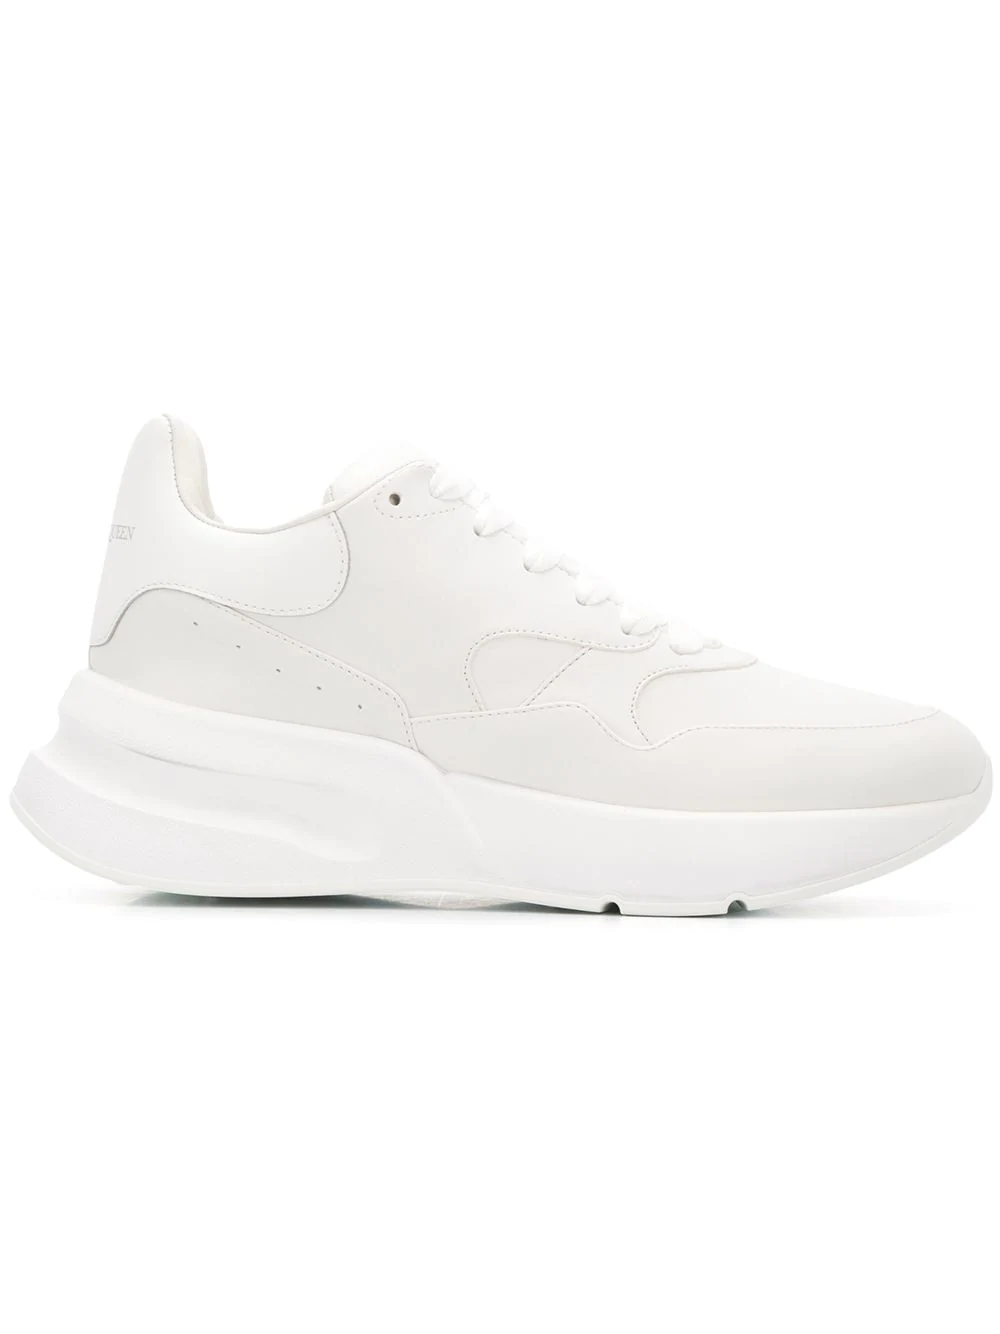 aa08b1fa5823 Alexander Mcqueen Runner Raised-Sole Low-Top Leather Trainers In White